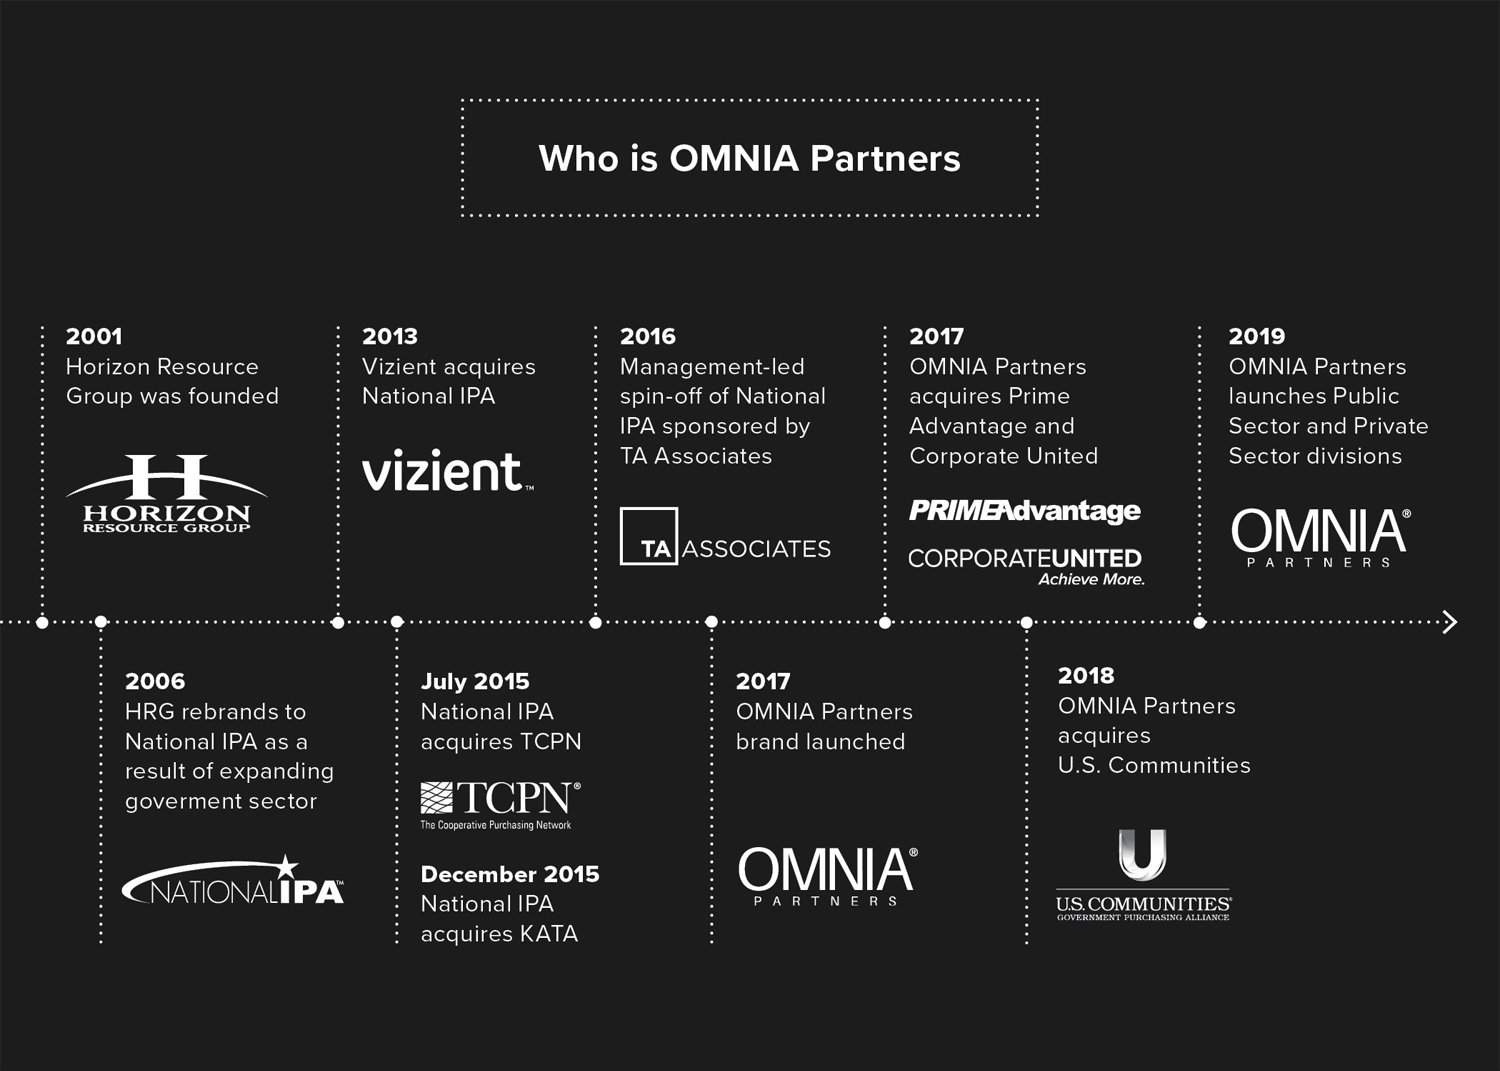 History of OMNIA Partners